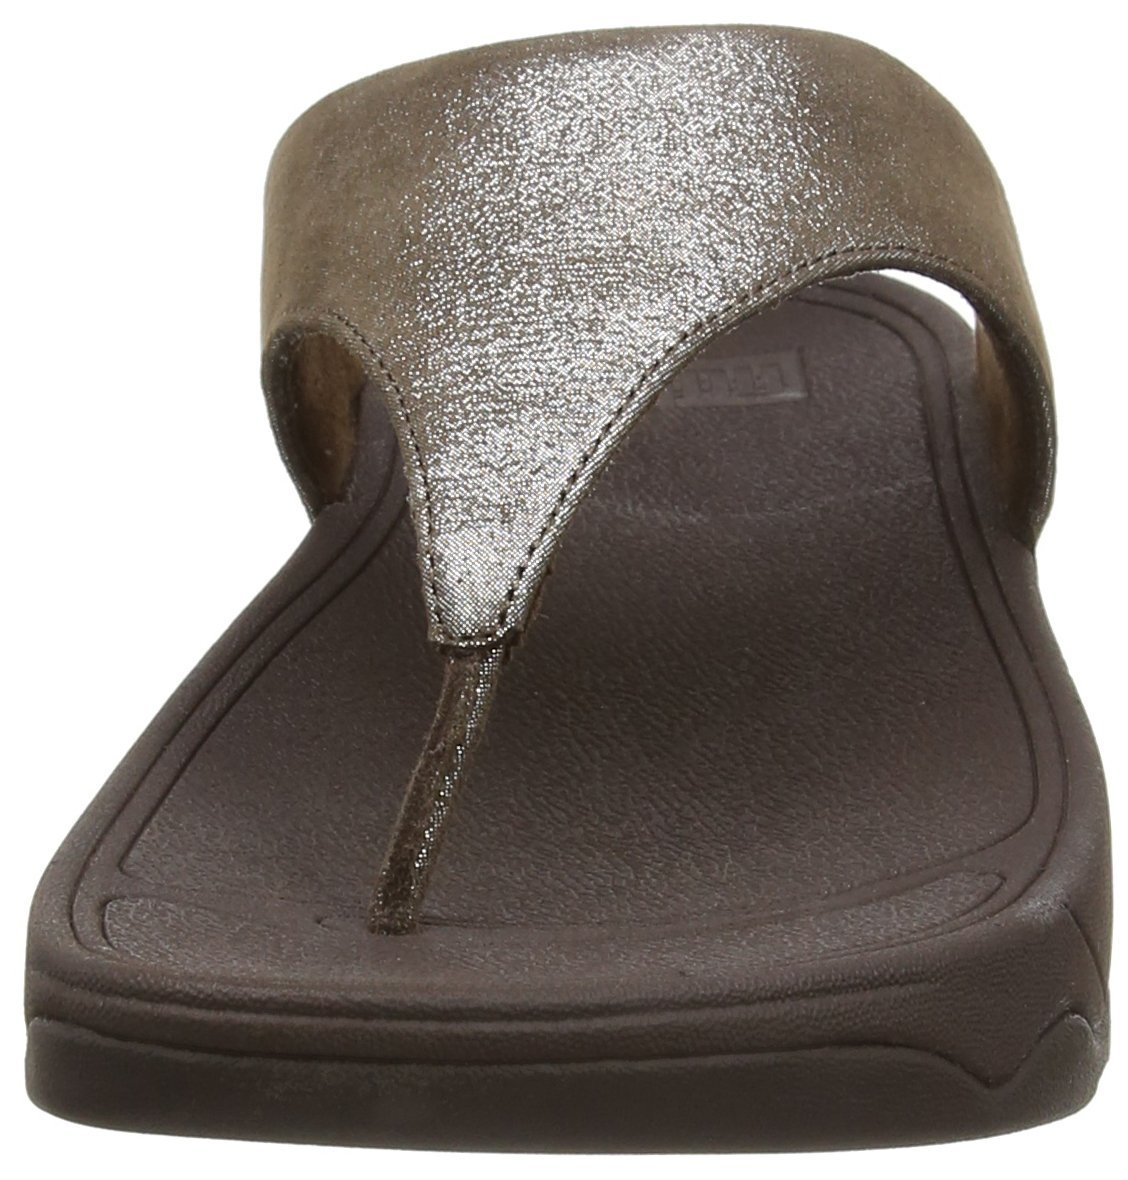 FitFlop Women's Lulu Shimmersuede Flip Flop, Bronze, 9 M US by FitFlop (Image #4)